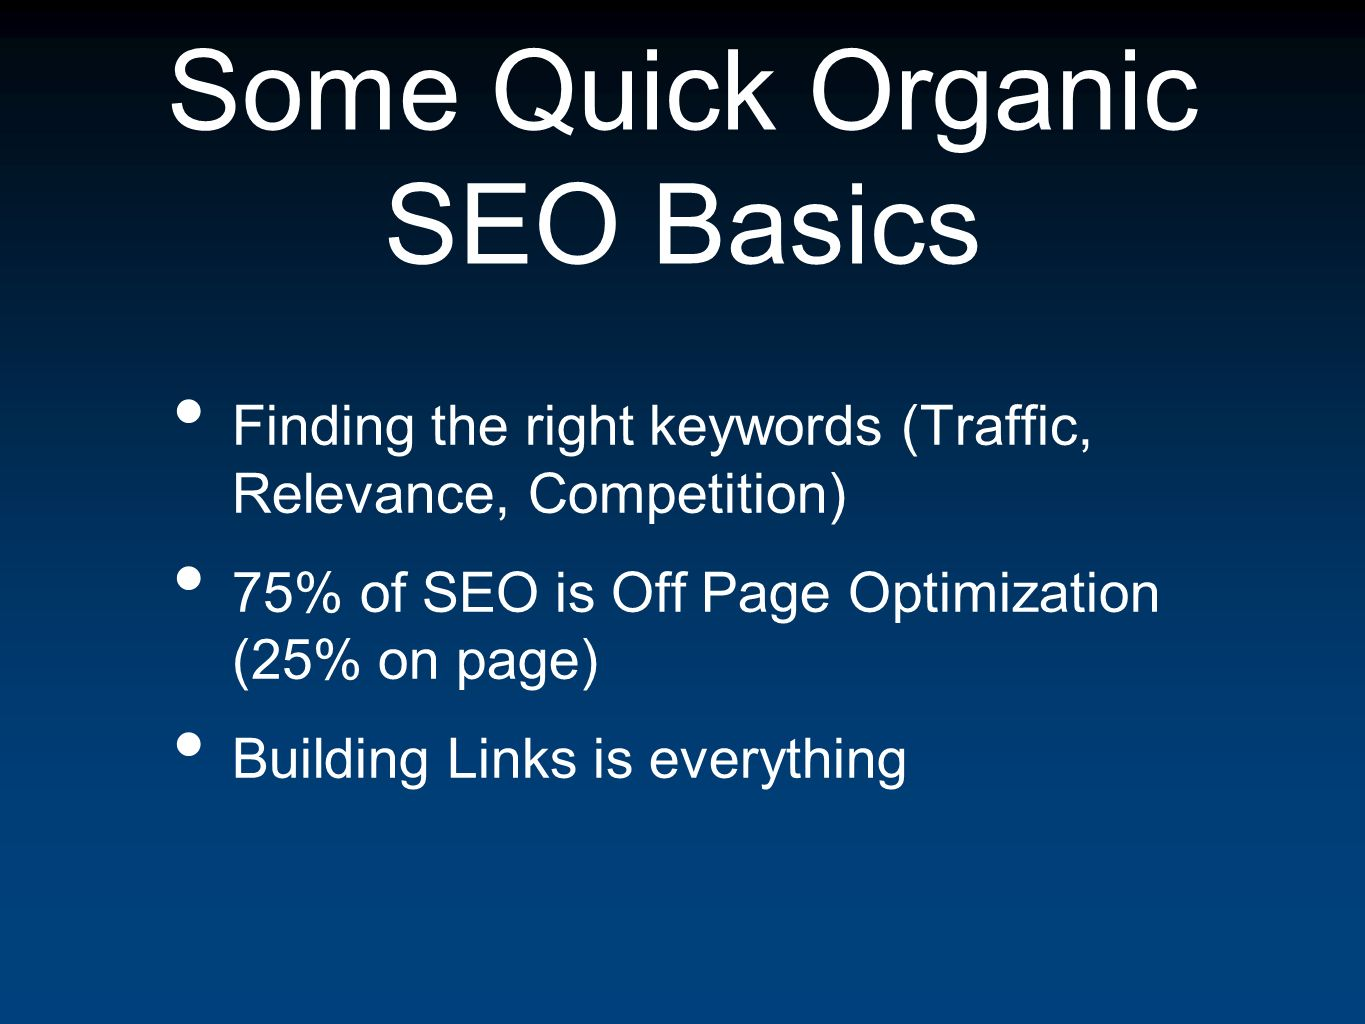 Some Quick Organic SEO Basics Finding the right keywords (Traffic, Relevance, Competition) 75% of SEO is Off Page Optimization (25% on page) Building Links is everything